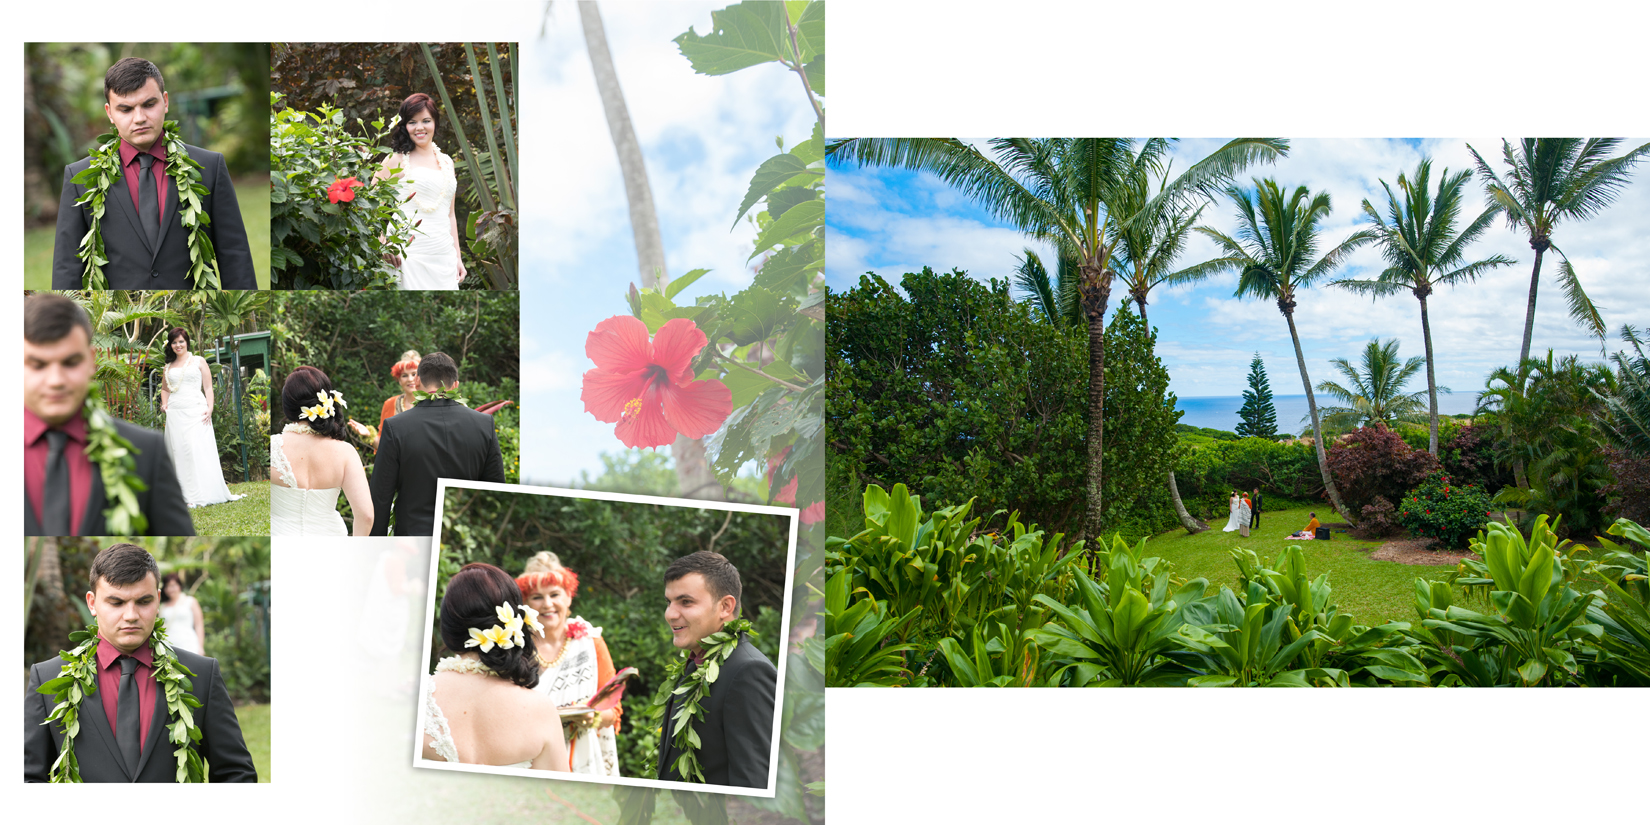 Maui Wedding Photography at Panoramic Tropical Setting in Haiku